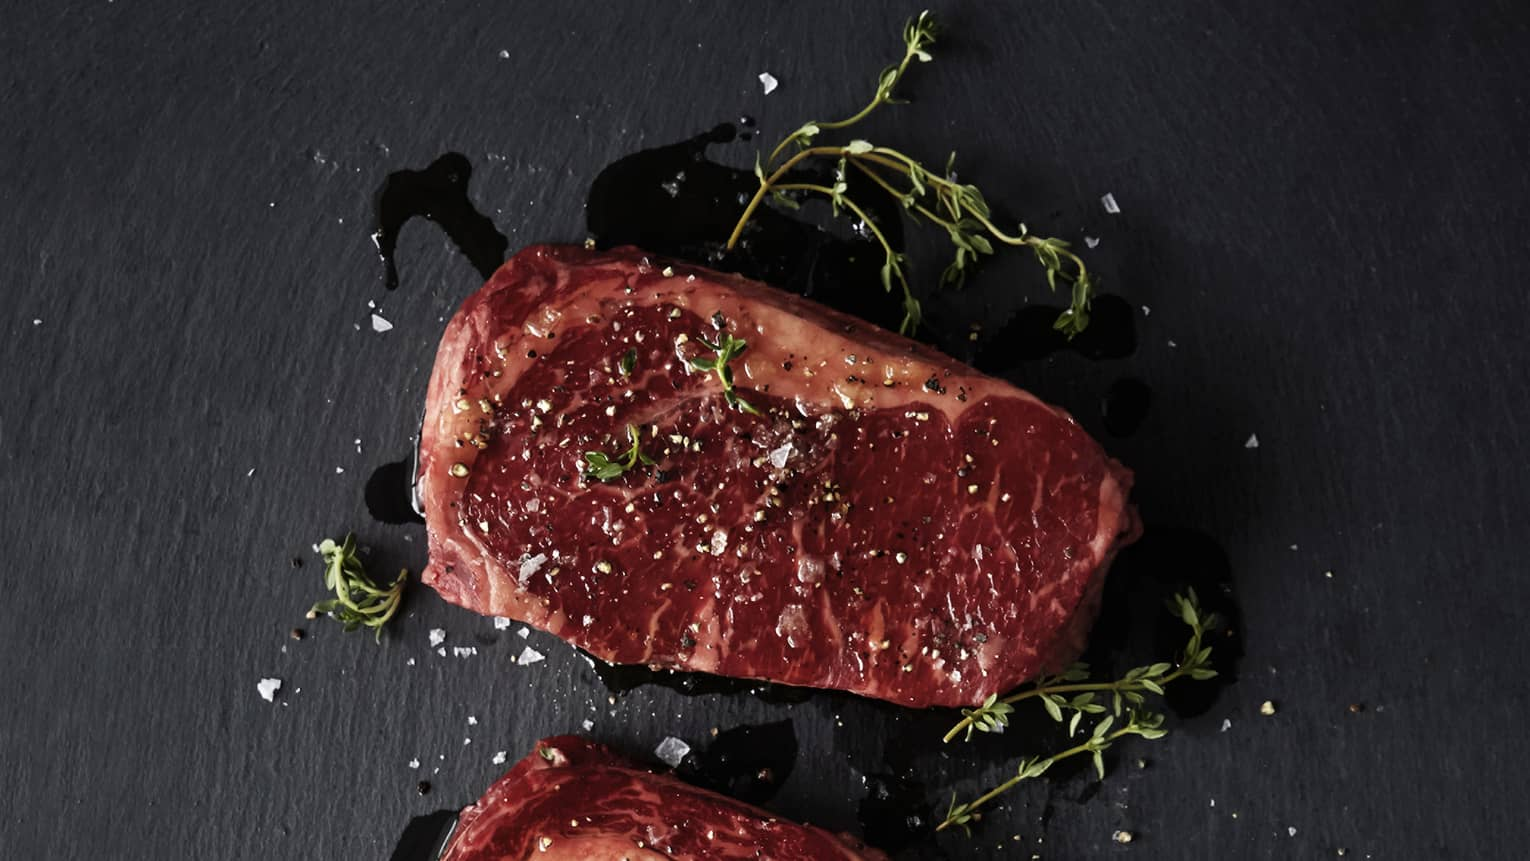 Raw Australian rib-eye steak garnished with salt, pepper, thyme on black counter